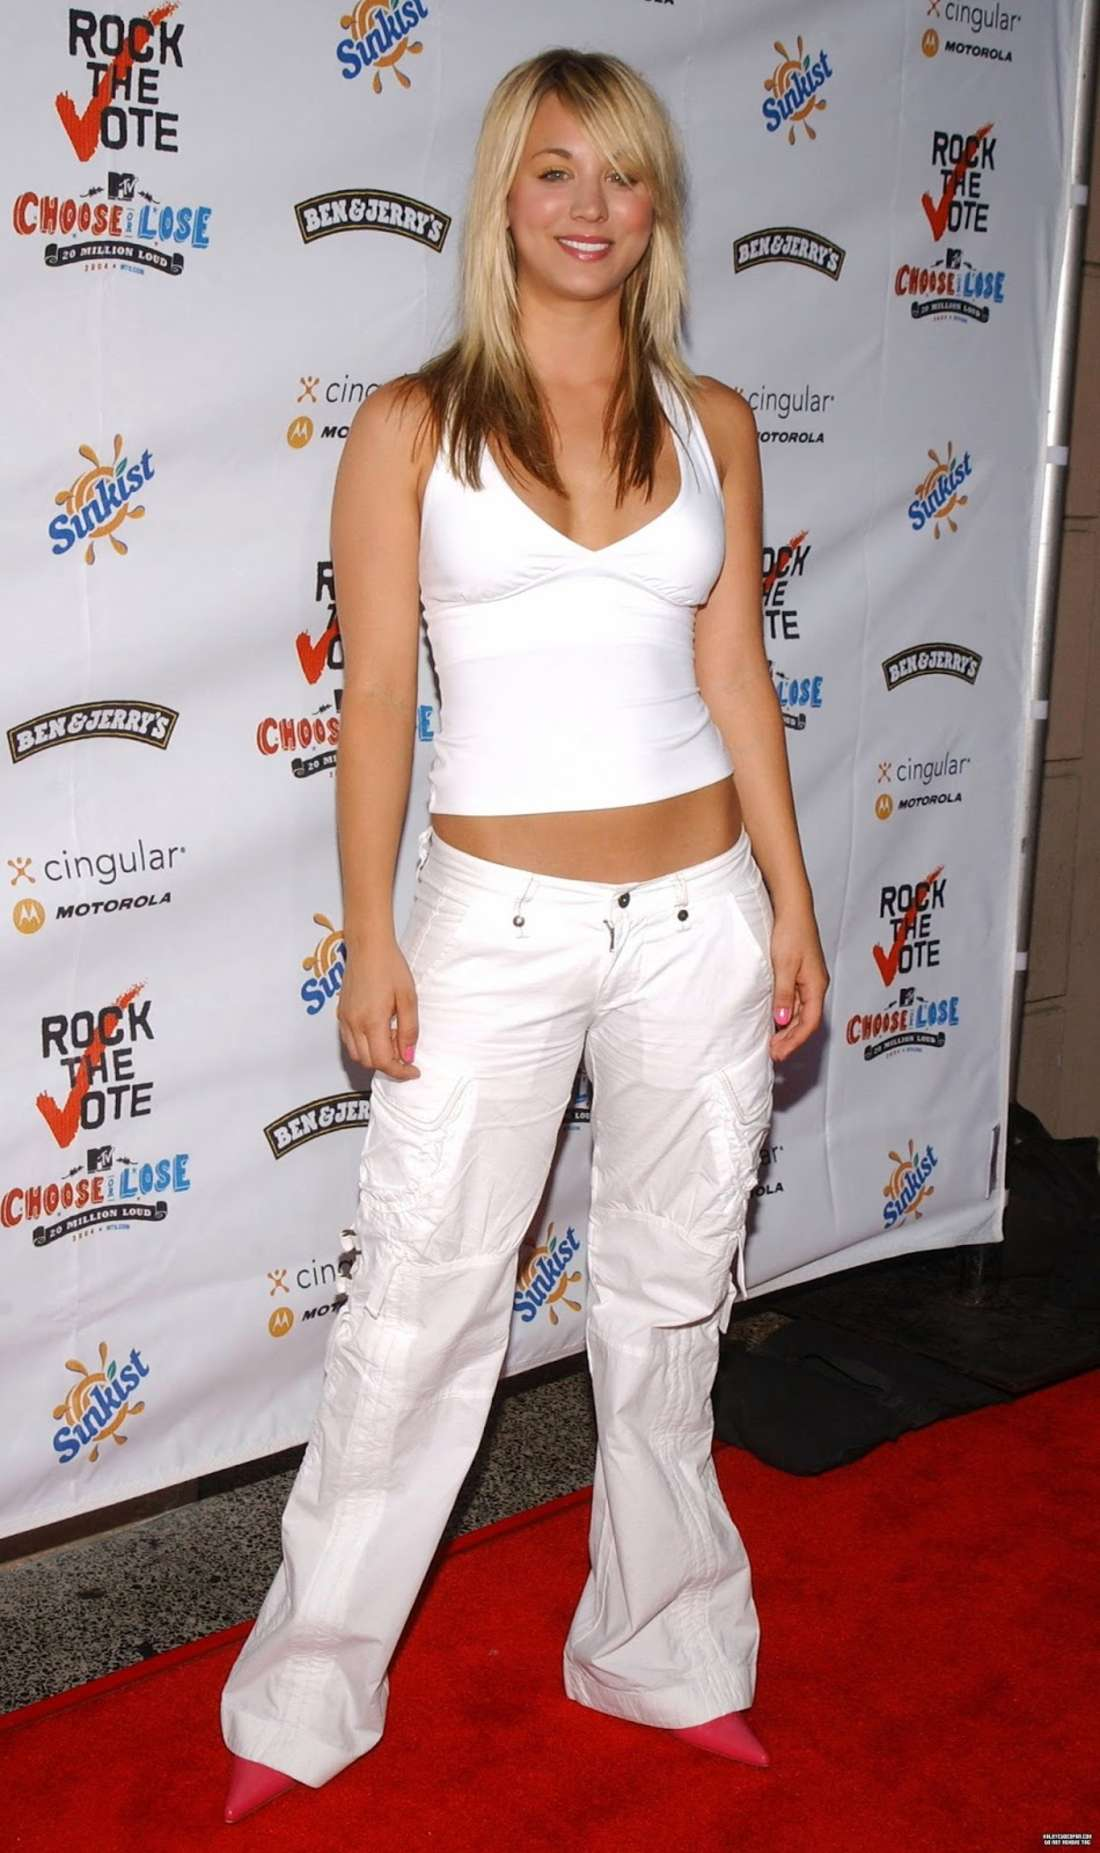 Kaley Cuoco 2016 : Kaley Cuoco: Rock The Vote National Bus Tour Concert 2004 -14